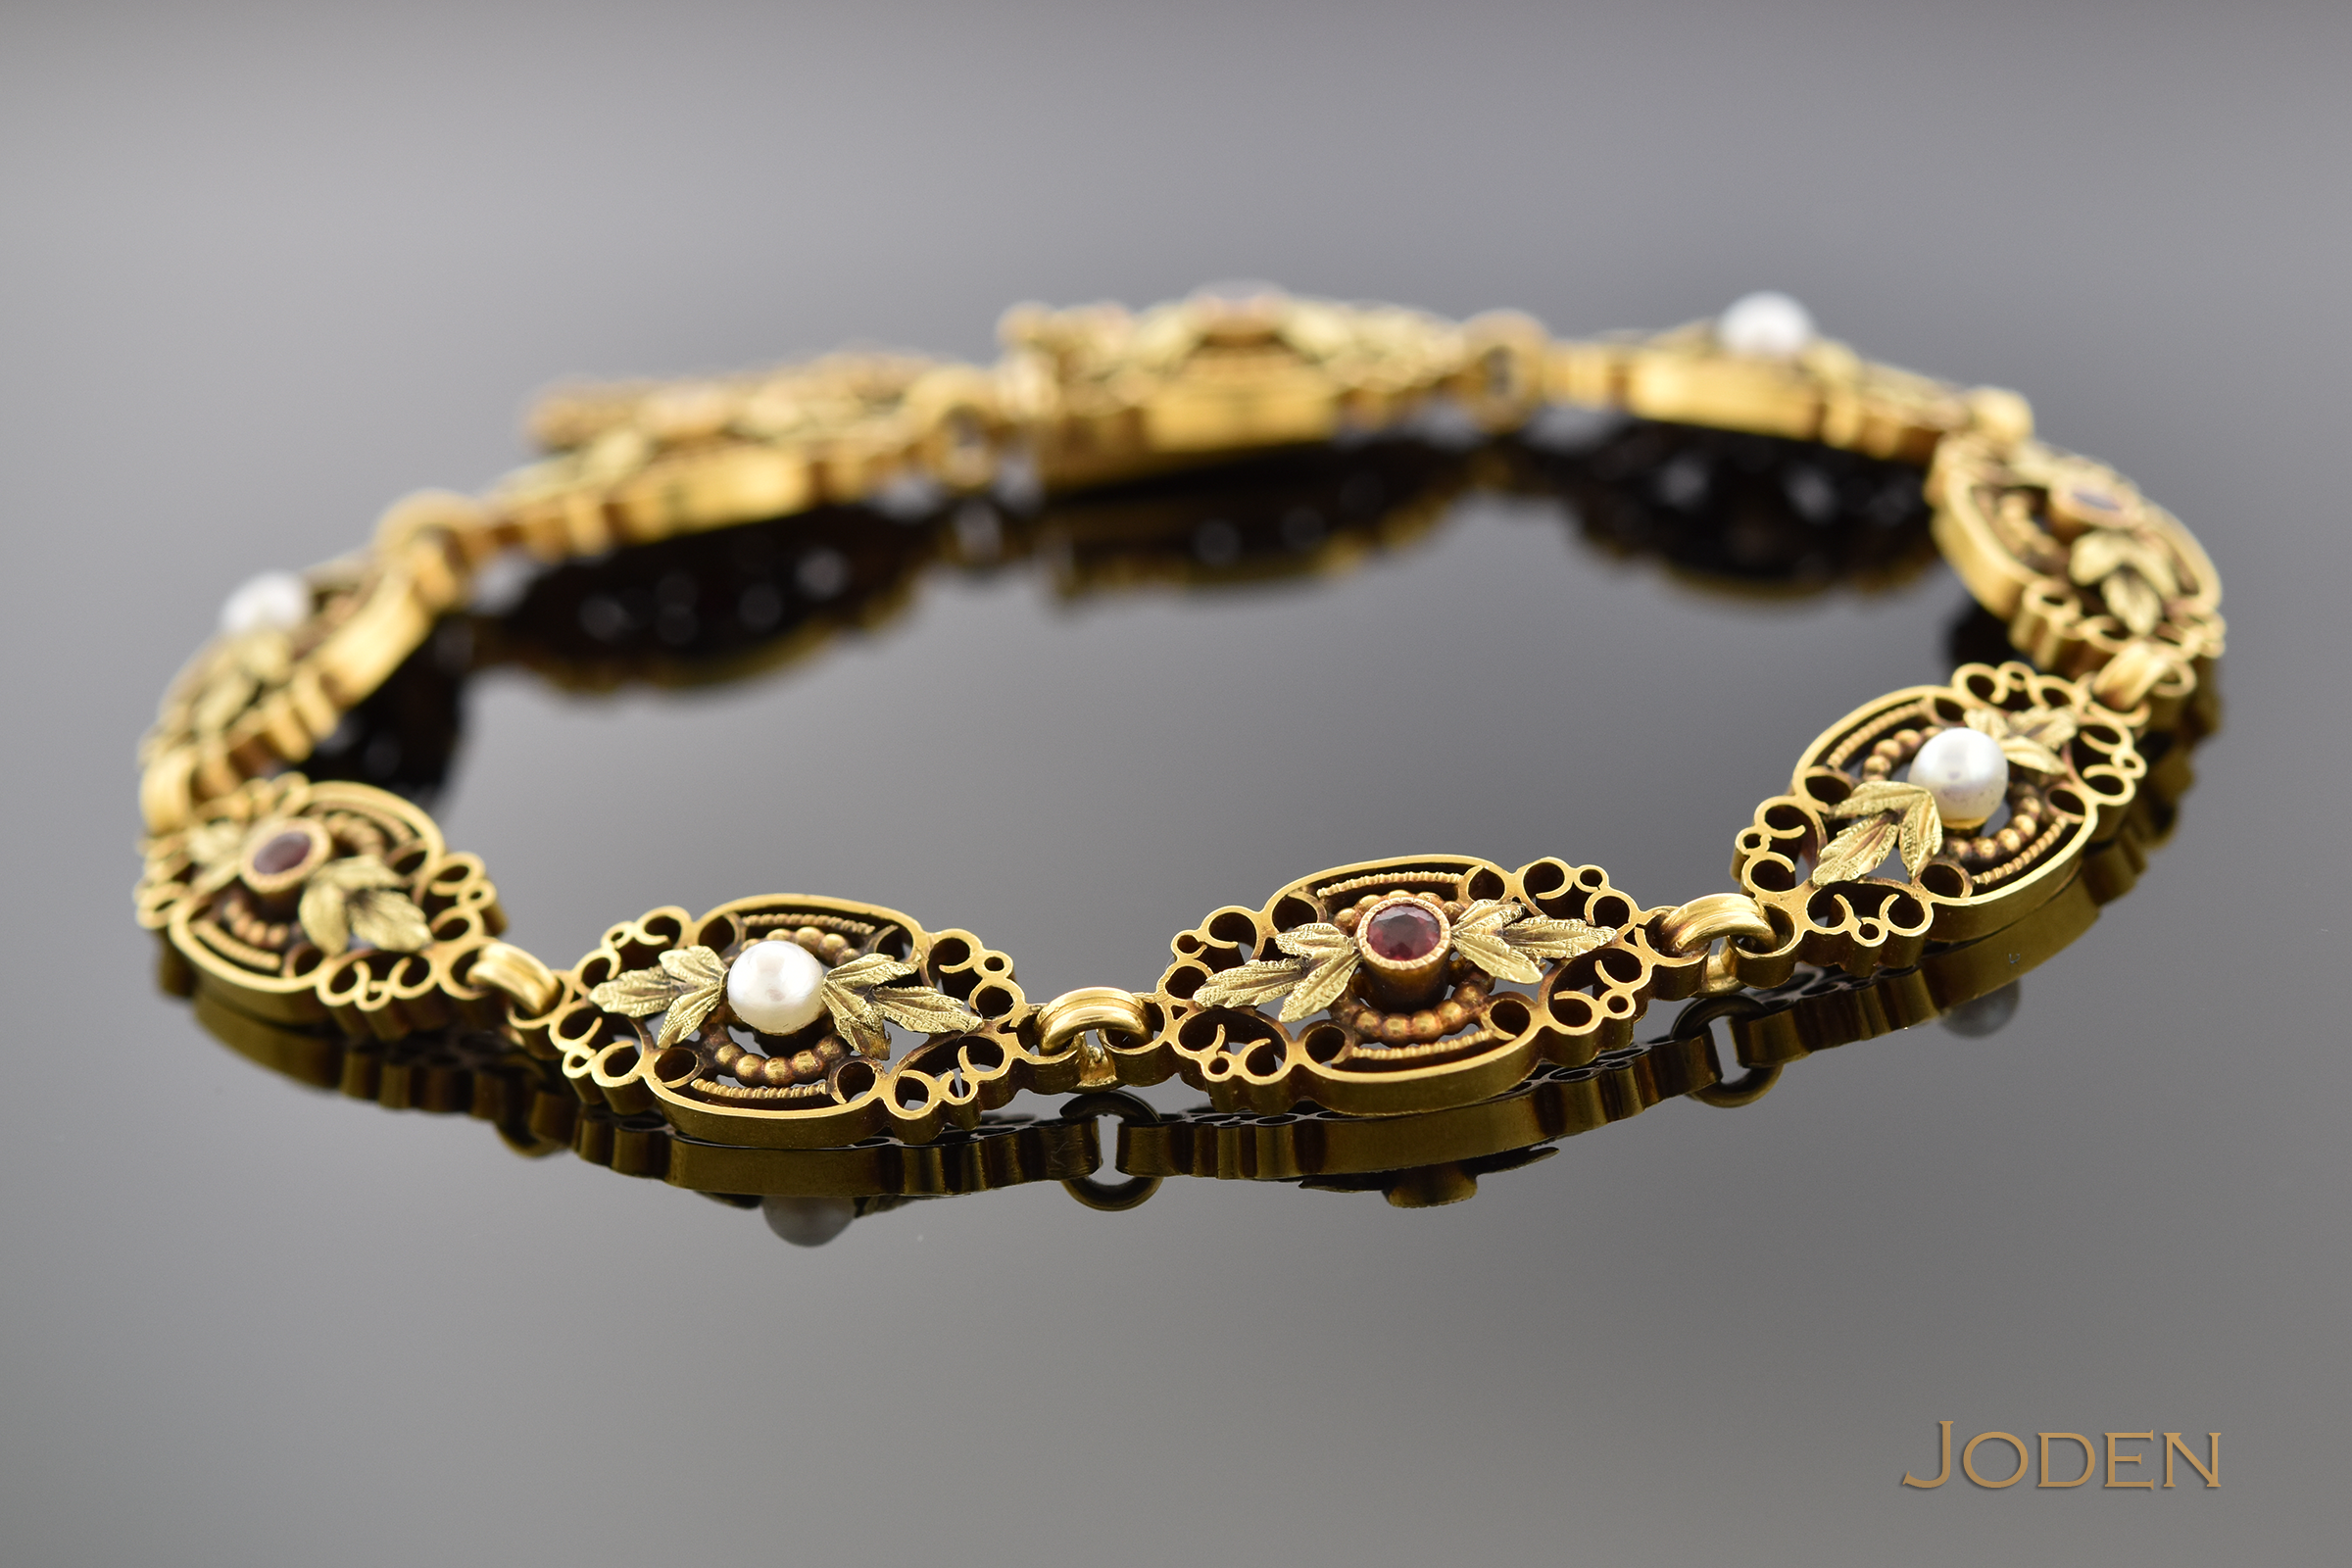 Each detailed link is handmade during the very late victorian period